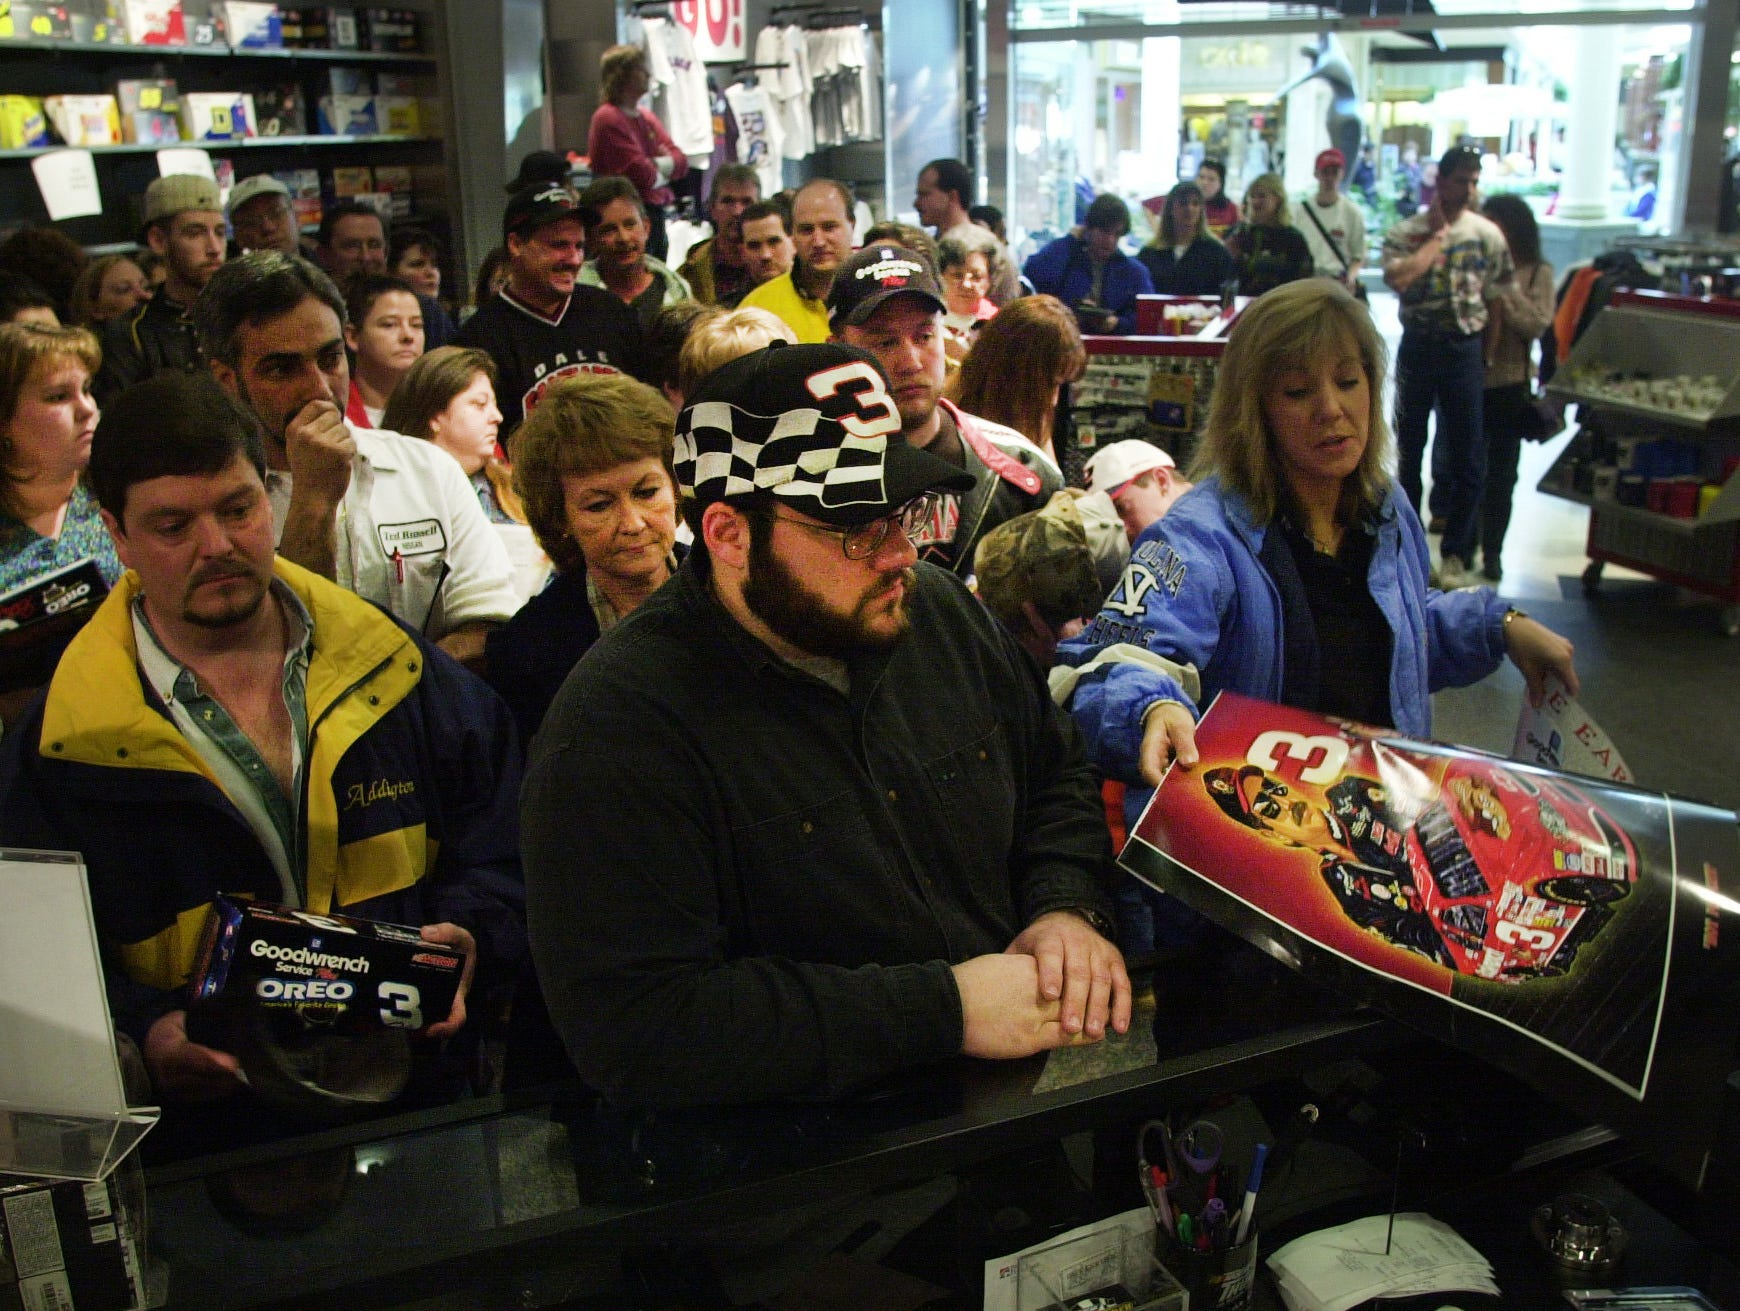 "Stephen Sheriff, center, and Julie Ray, right, were among the throng of fans buying Dale Earnhardt memorabilia the day after his death on Monday, Feb. 19, 2001, at the NASCAR Thunder store in West Town Mall. ""It was the day that NASCAR died. It's like those lines from the Don McLean song---'February made me shiver' and ""Drove my Chevy to the levee,"" "" said Ray, a North Carolina native now living in Knoxville. (Paul Efird/ News-Sentinel)"